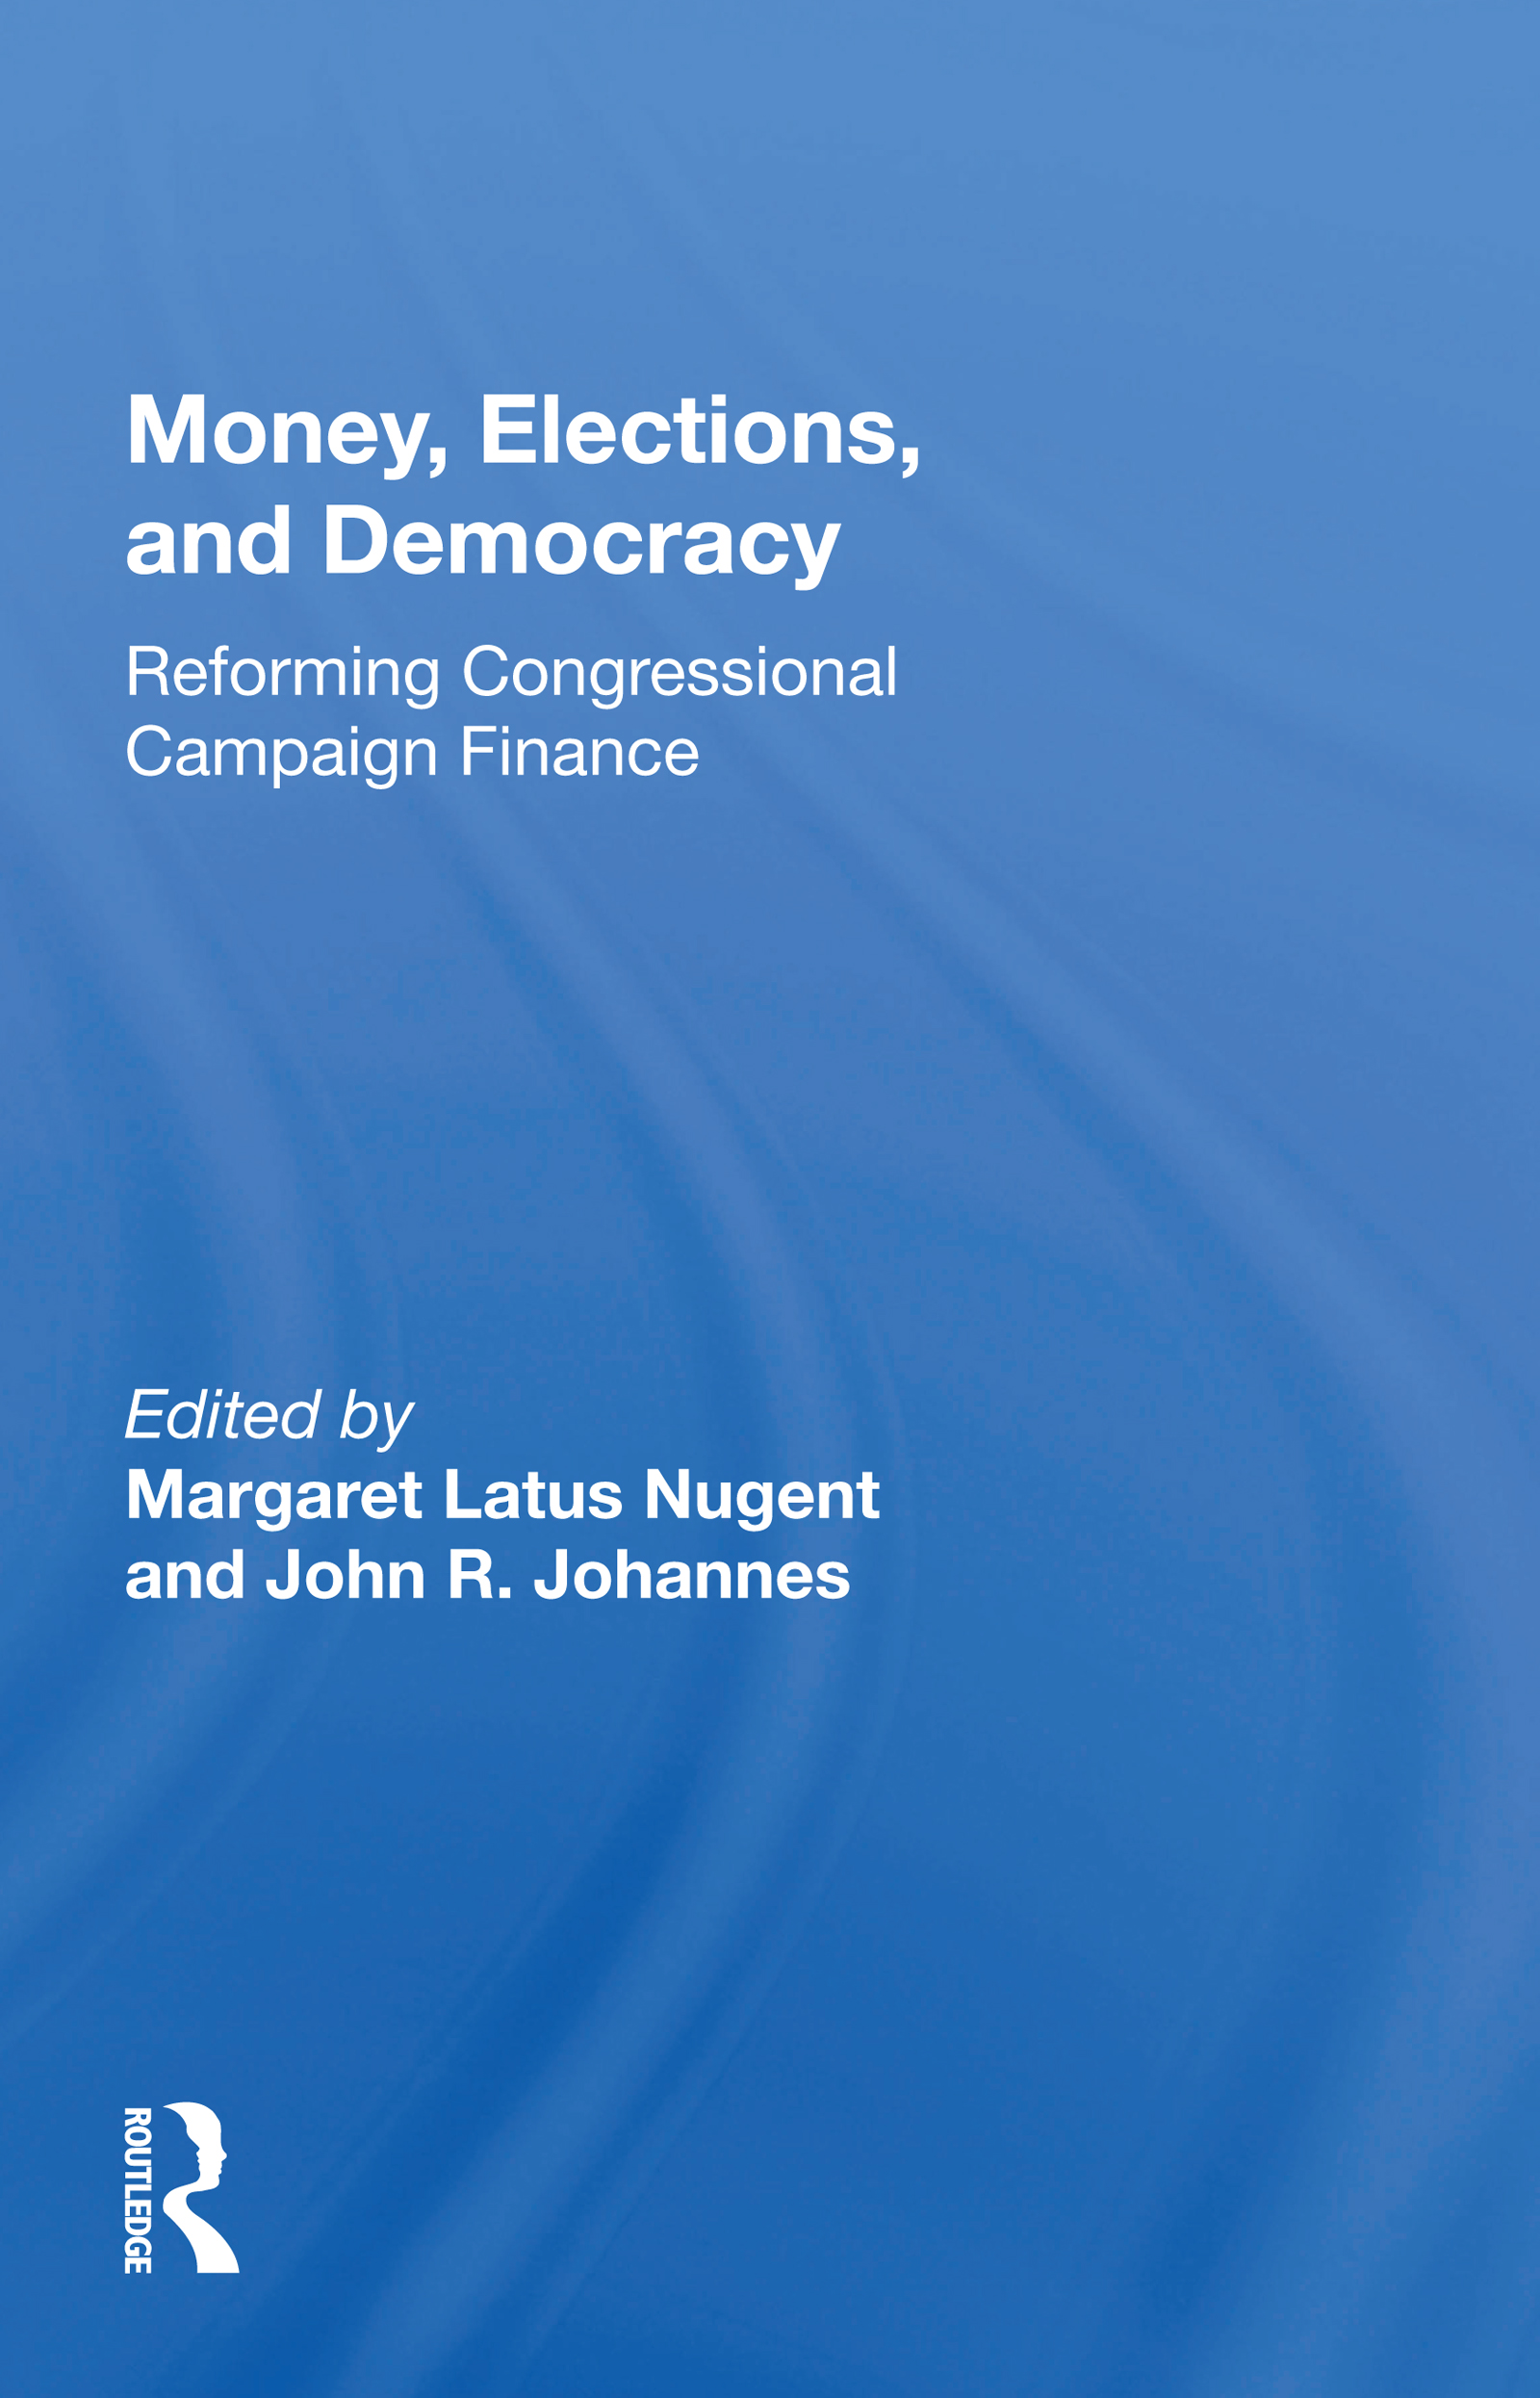 Money, Elections, and Democracy